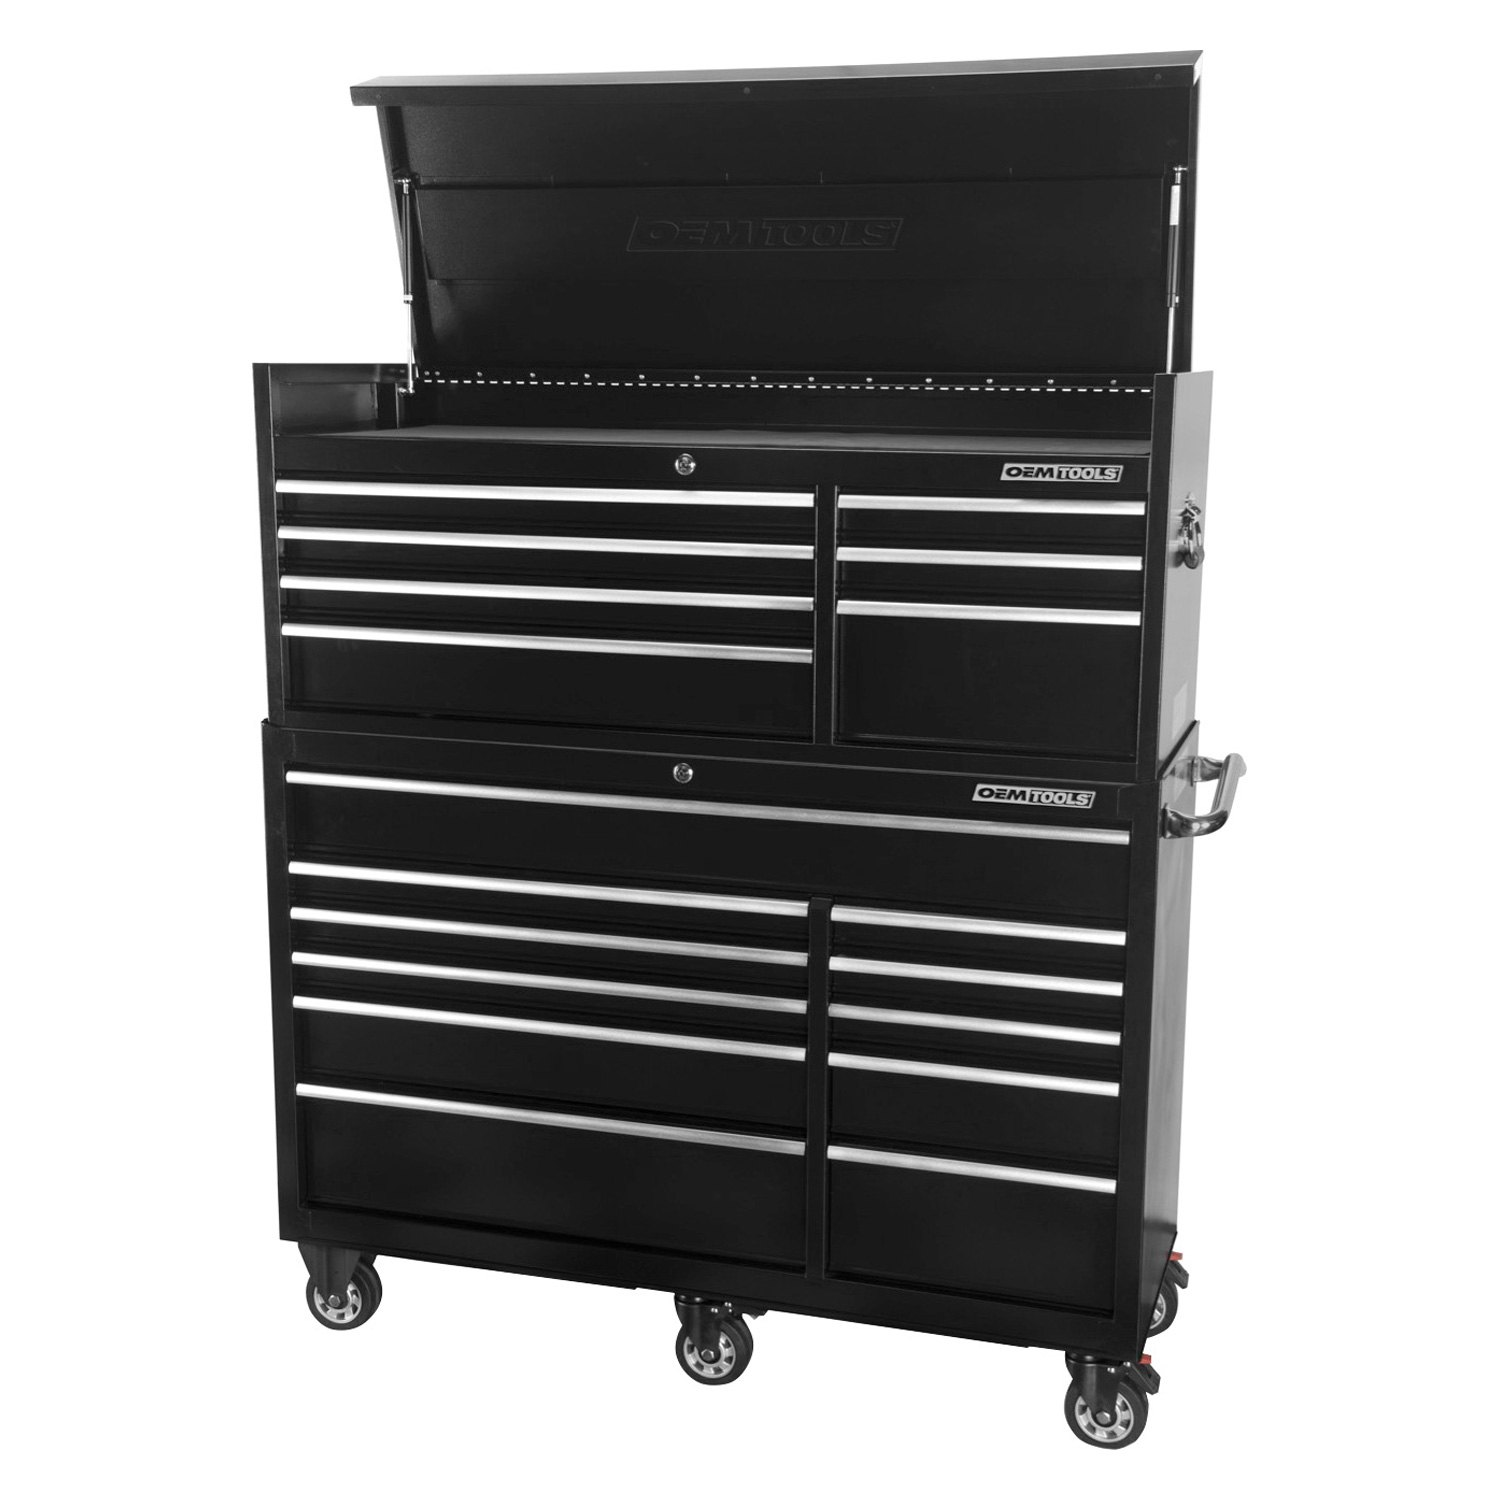 oem tools 24581 56 black chest and cabinet combo. Black Bedroom Furniture Sets. Home Design Ideas